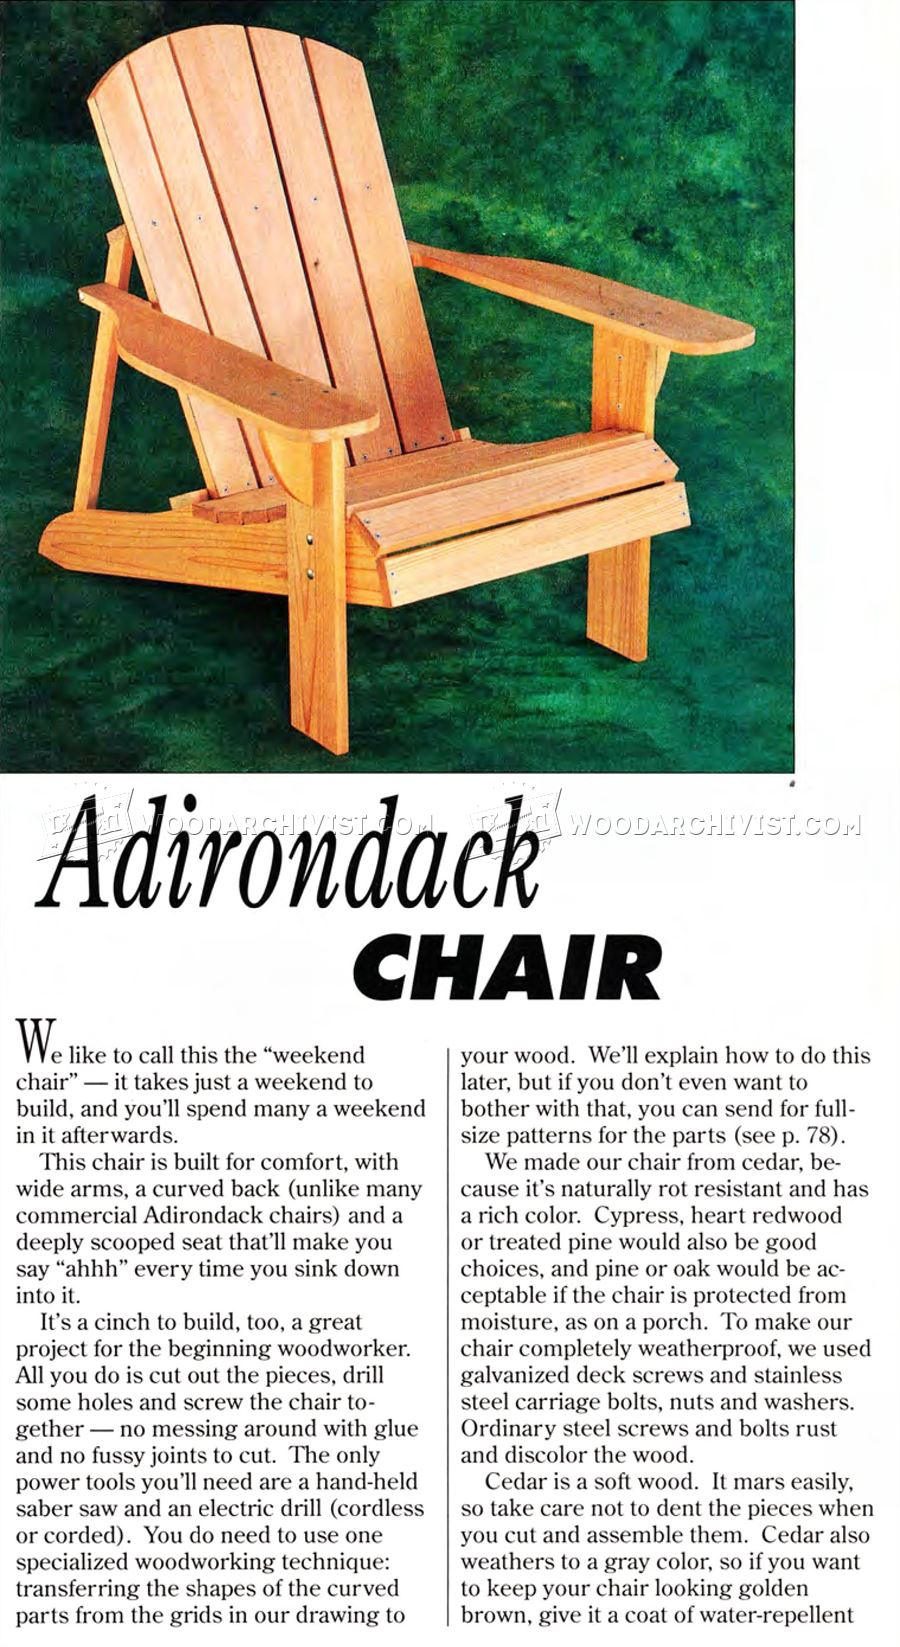 adirondack chair blueprints wood chairs classic plans • woodarchivist